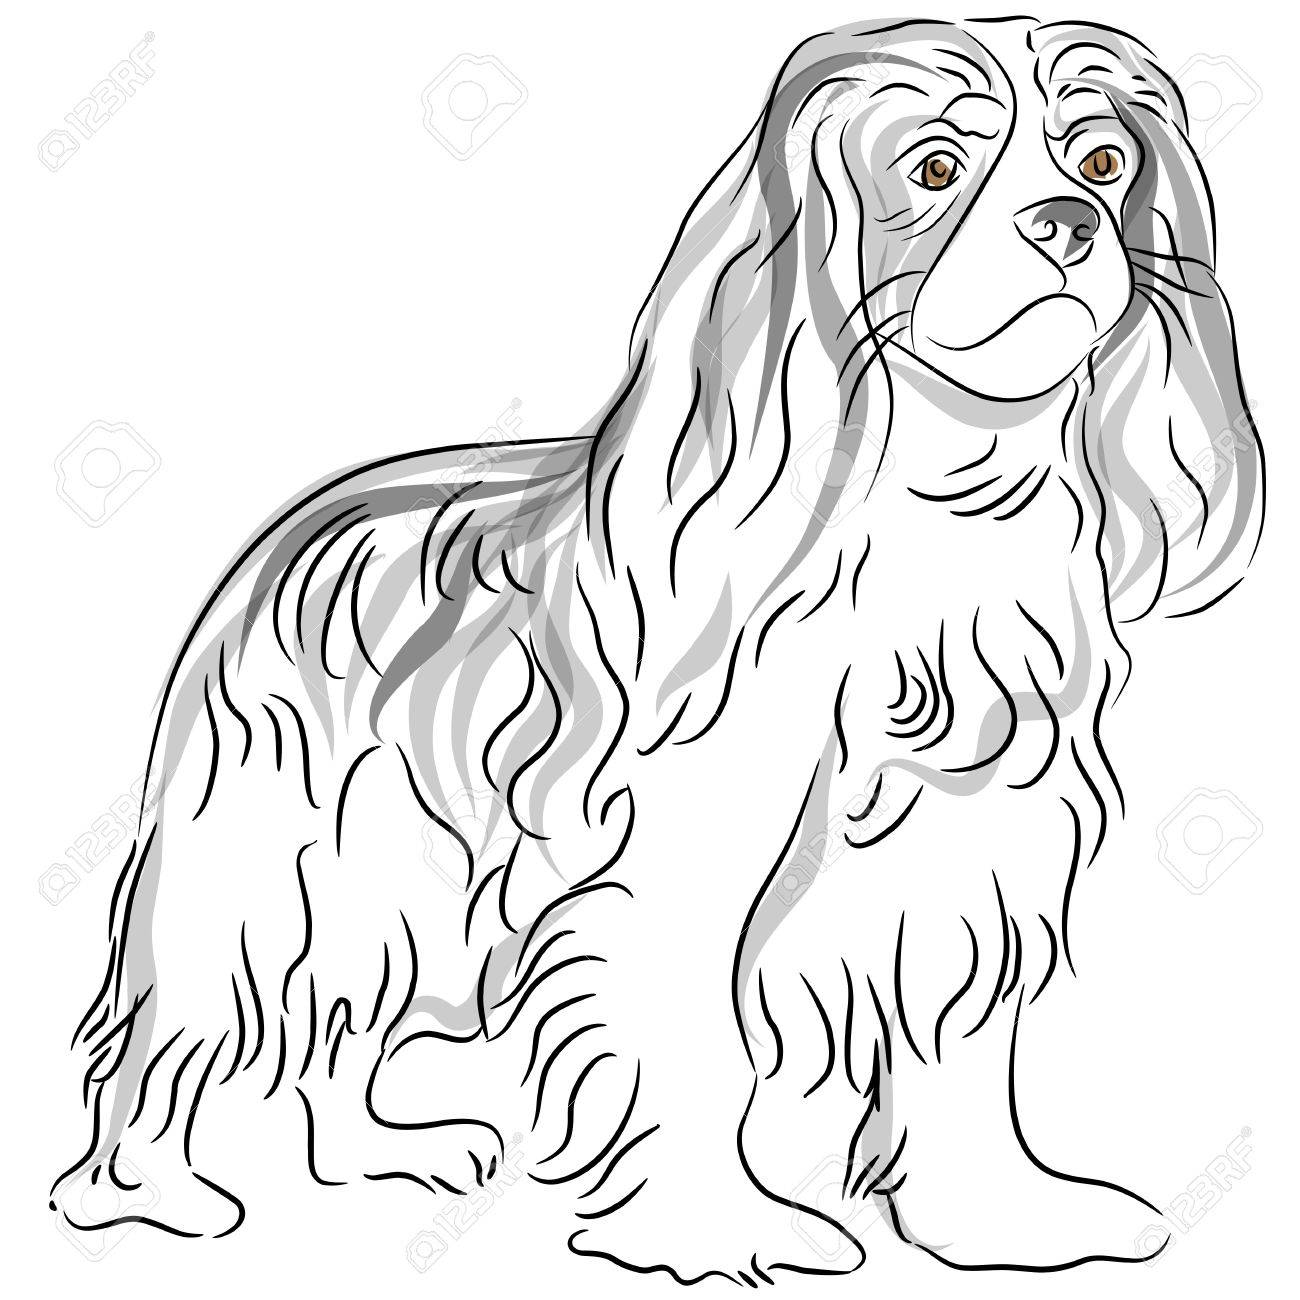 An Image Of A Cavalier King Charles Spaniel Dog Drawing Stock Vector   9718948